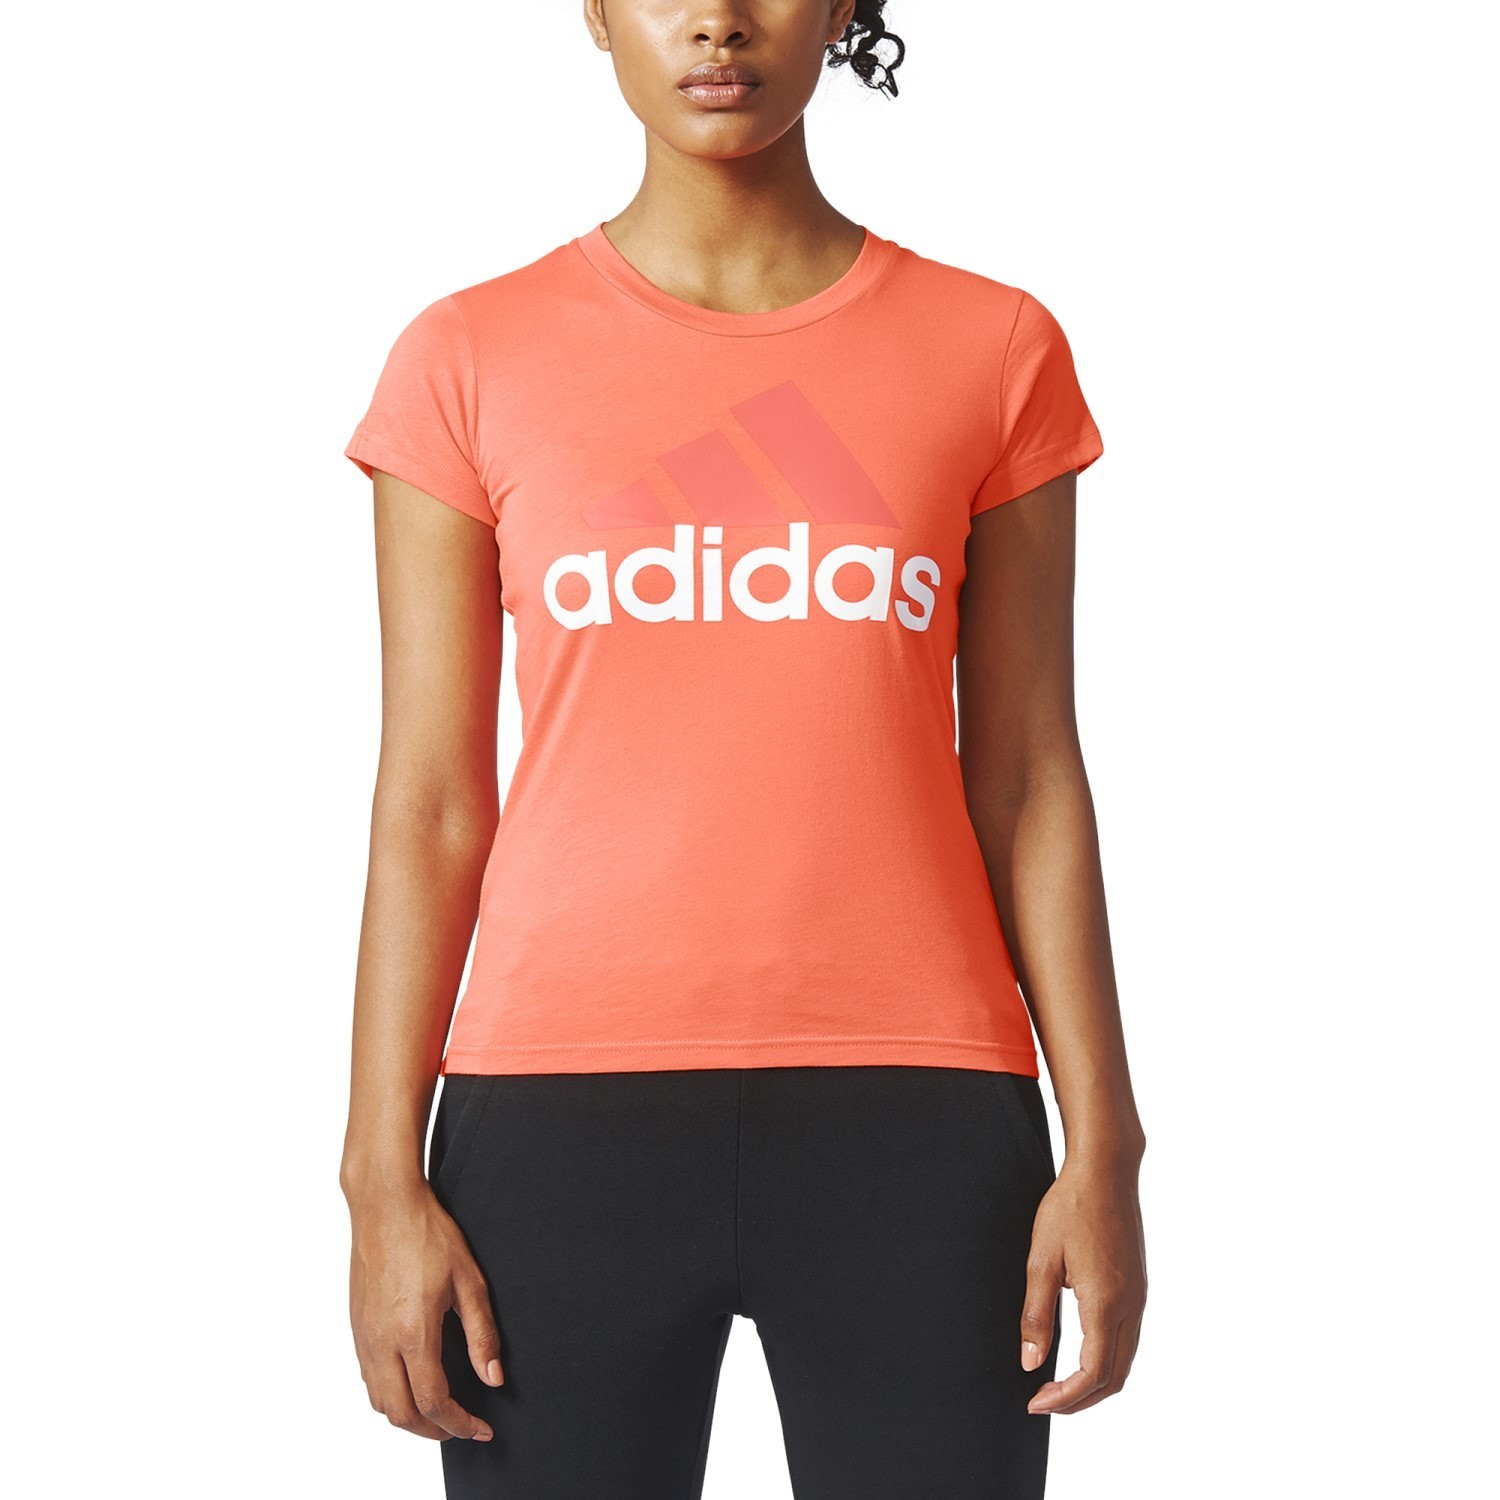 c6fbb7ca Adidas Essentials Linear Womens T-Shirt - Easy Coral/White | Sportitude